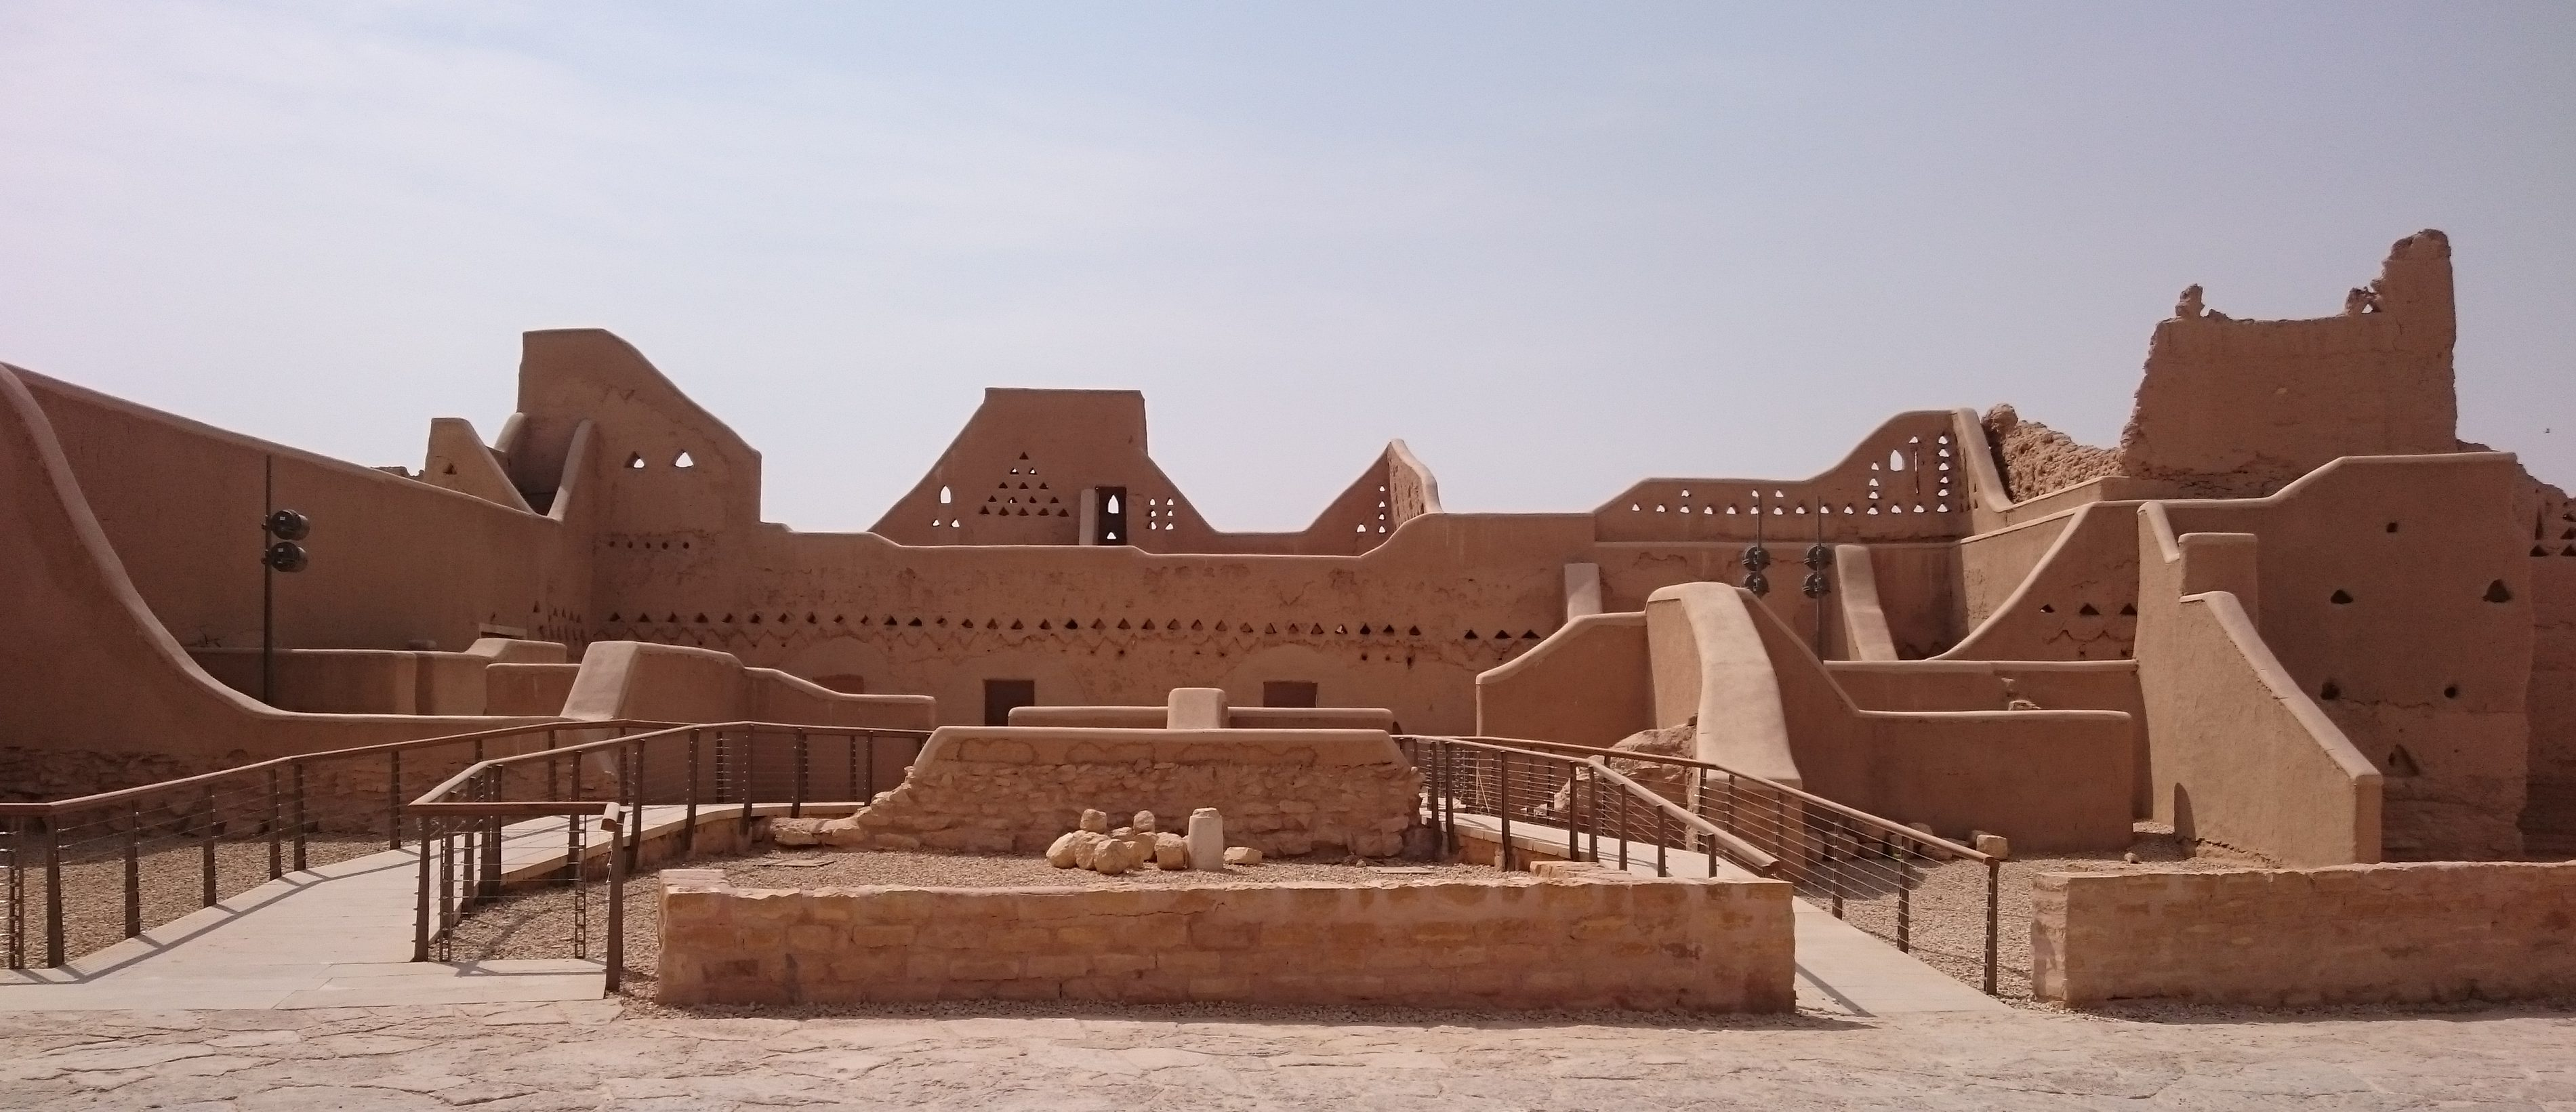 Walkways into the palaces at Historical Addiriyah allow people to get close without causing damage